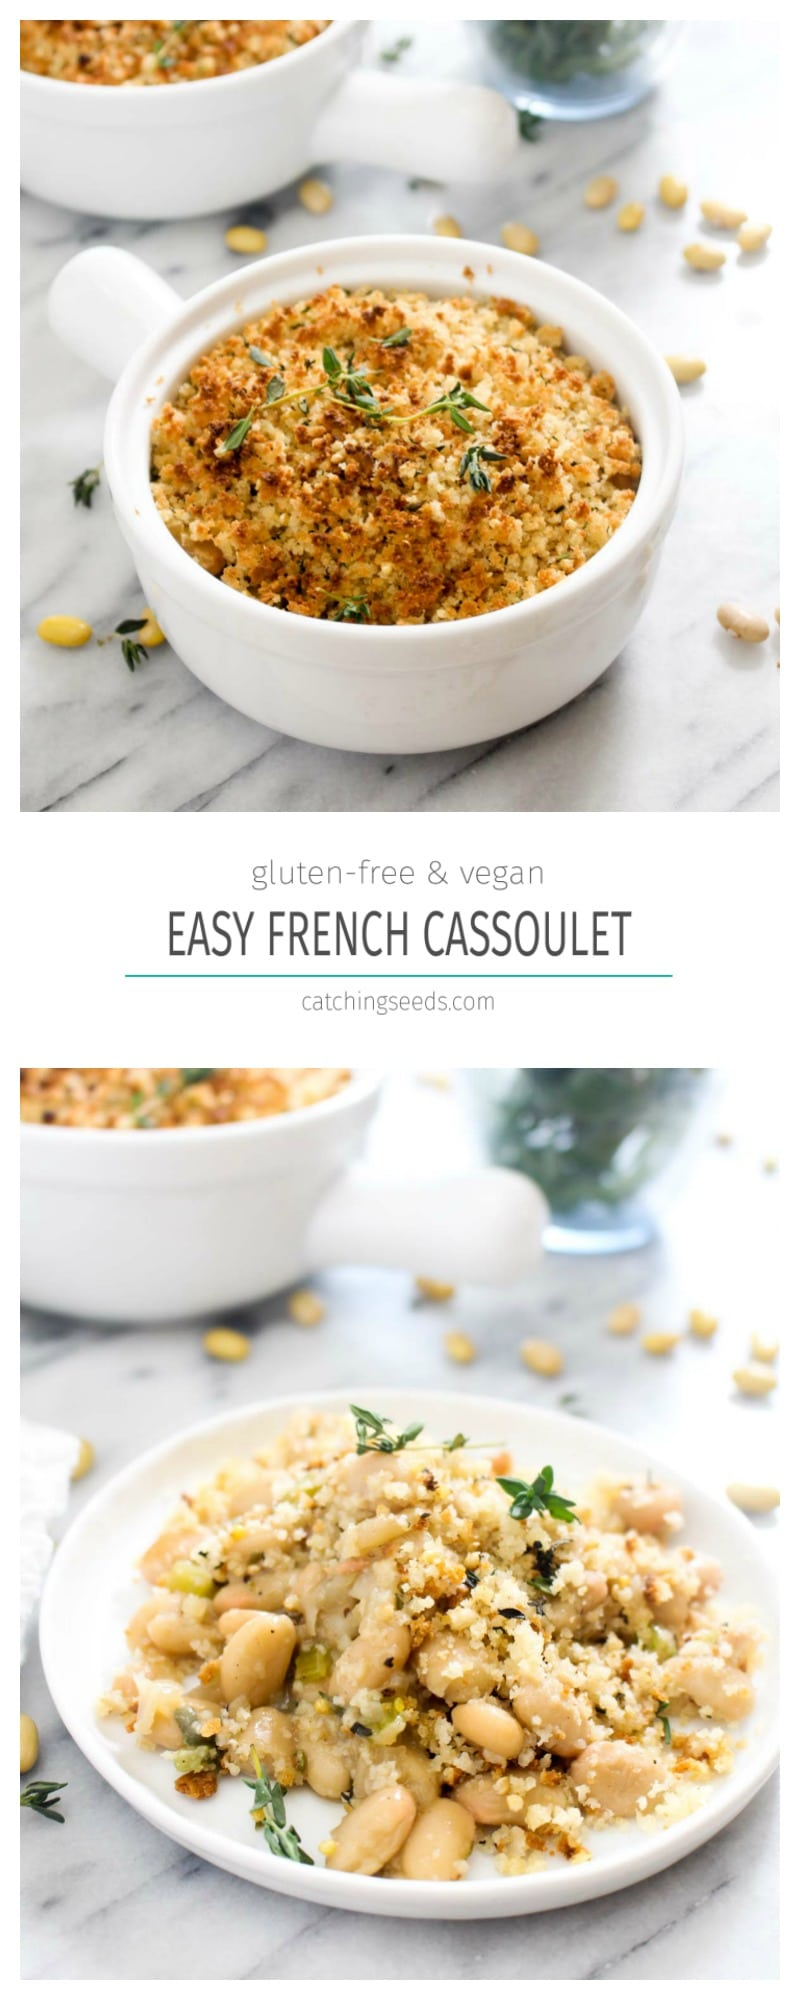 This quick 30 minute Easy Vegan Cassoulet recipe is bursting with French flavor. Beans are slow simmered in a flavorful sauce and then topped with golden brown breadcrumbs to make the perfect side to dinner. A few vegan hacks allow us to make this recipe feel traditional while omitting the meat. | CatchingSeeds.com